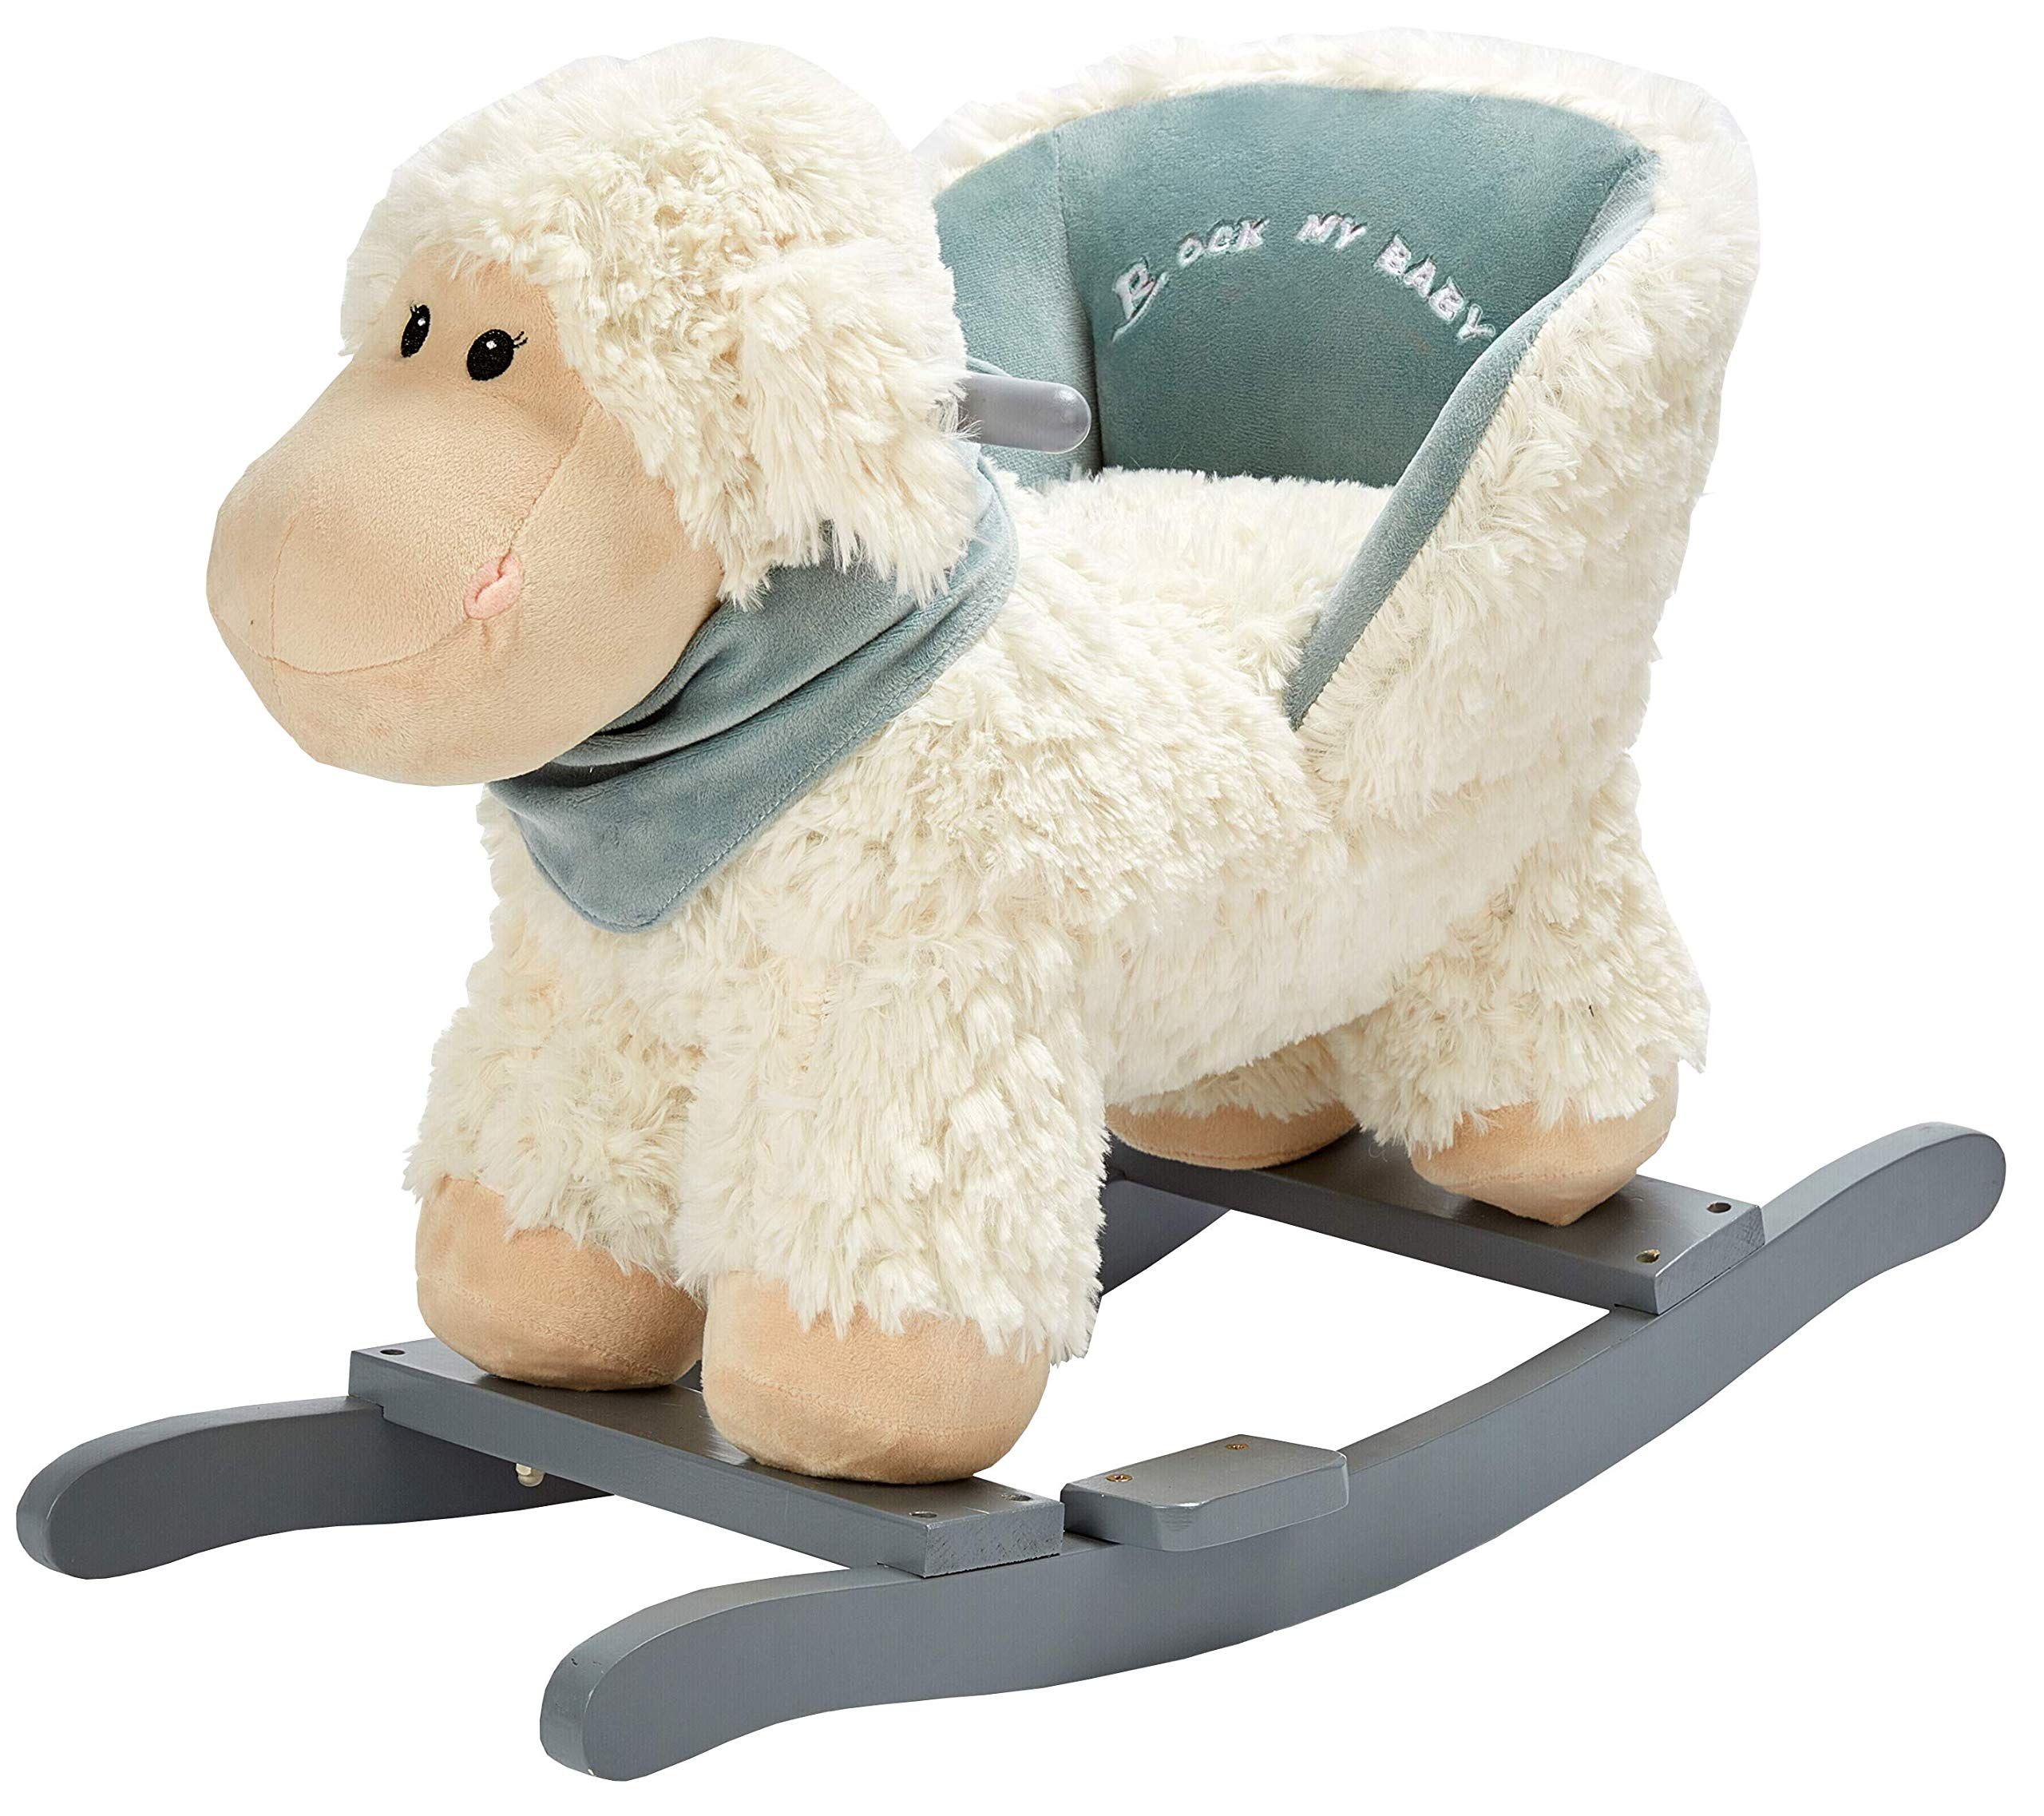 Rock My Baby White Lamb with Chair,Plush Stuffed Animal Rocker,Wooden Rocking Toy Lamb/Baby Rocker/Animal Ride on,Home Decor,for Girls,Indoor&Outdoor (White Lamb)